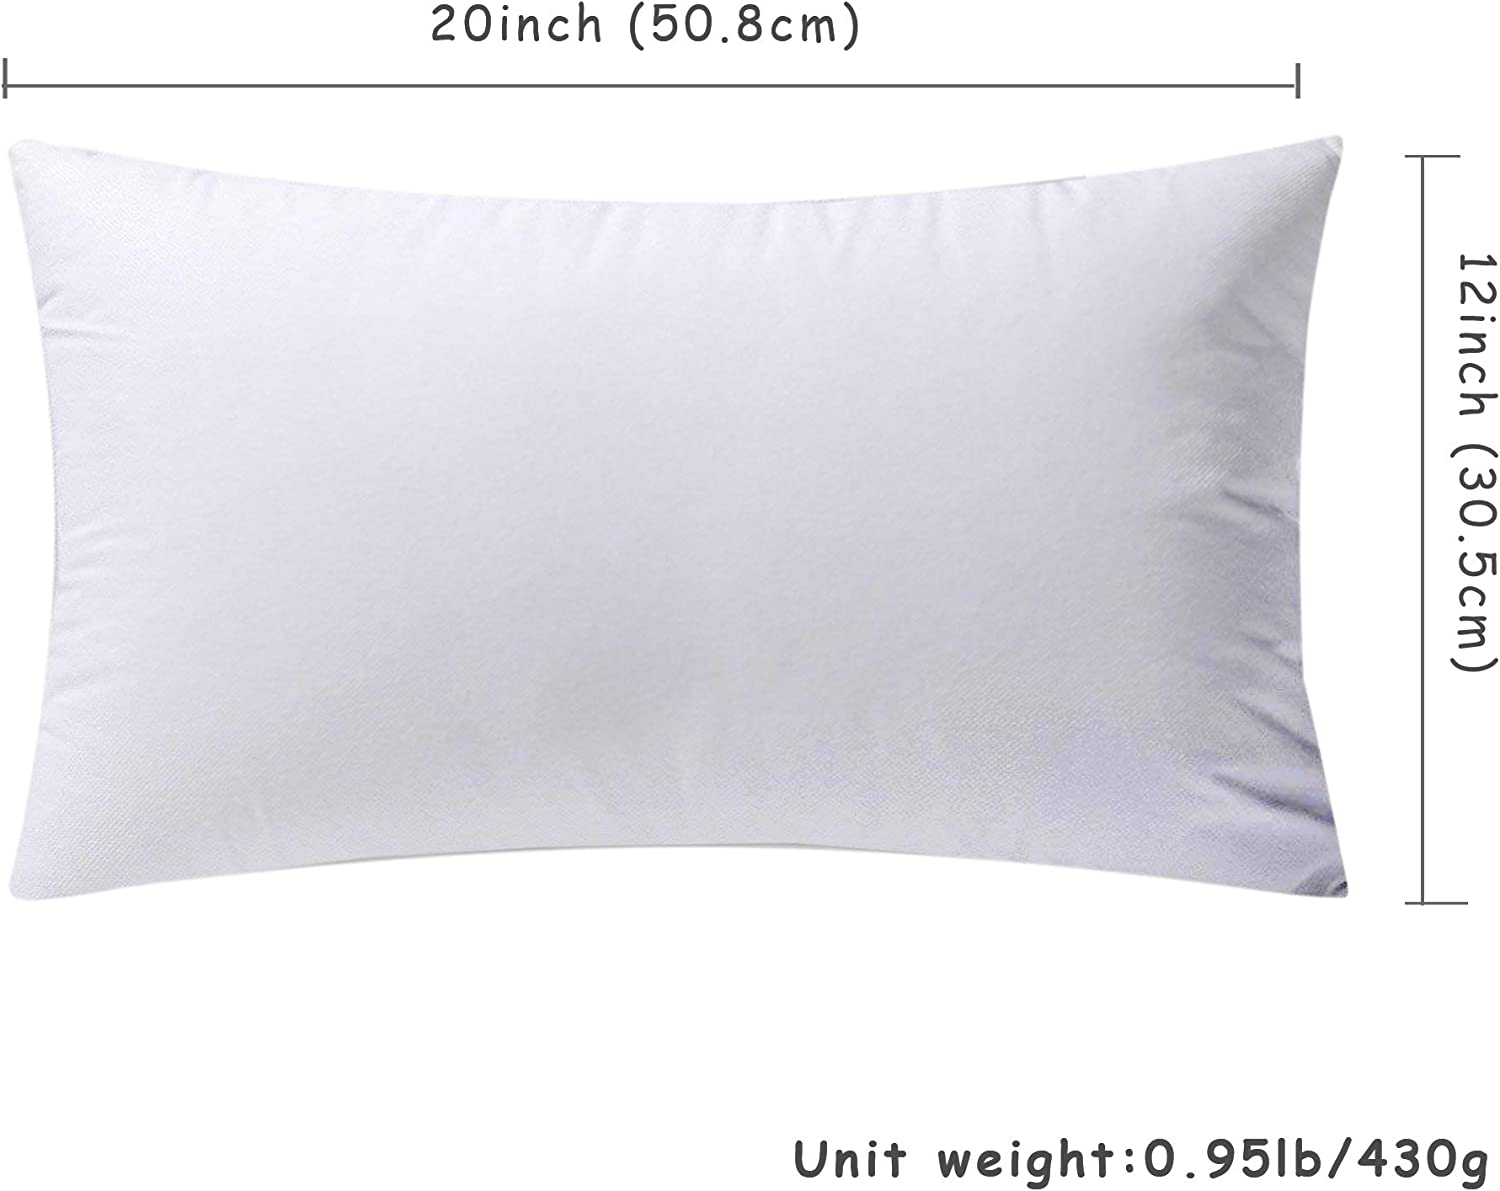 Eggishorn Throw Pillow Inserts Pack of 2 12x20 inch Lumbar Pillow Stuffer Fully Filling with 430g Premium Resilient Microfiber Suitable for Soft Bed and Couch Cushion